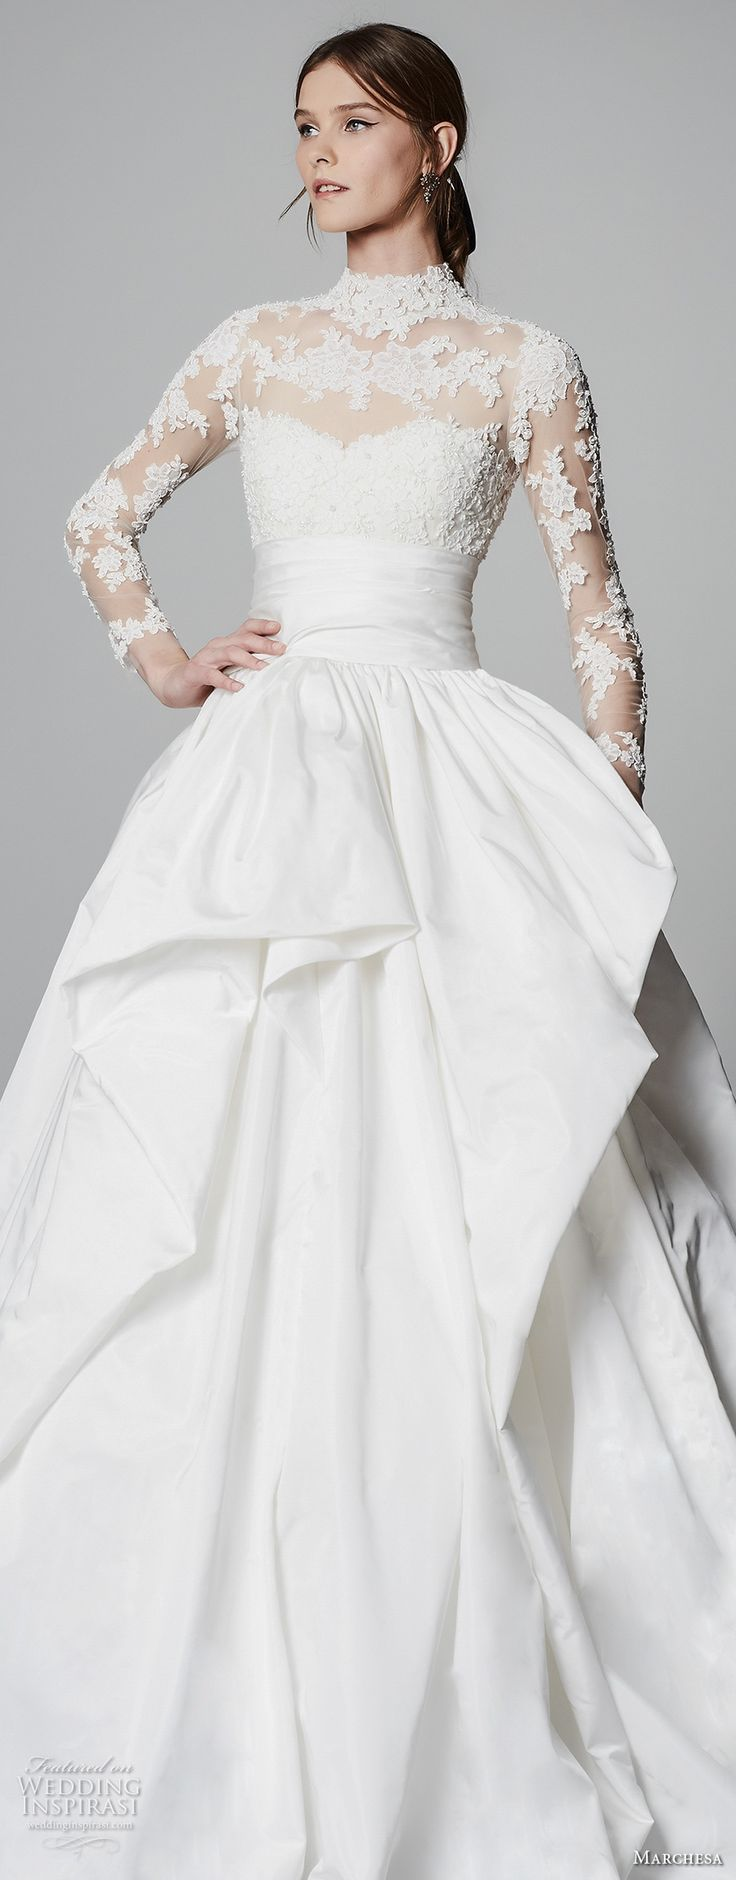 Lady edith wedding dress 2018 with lace